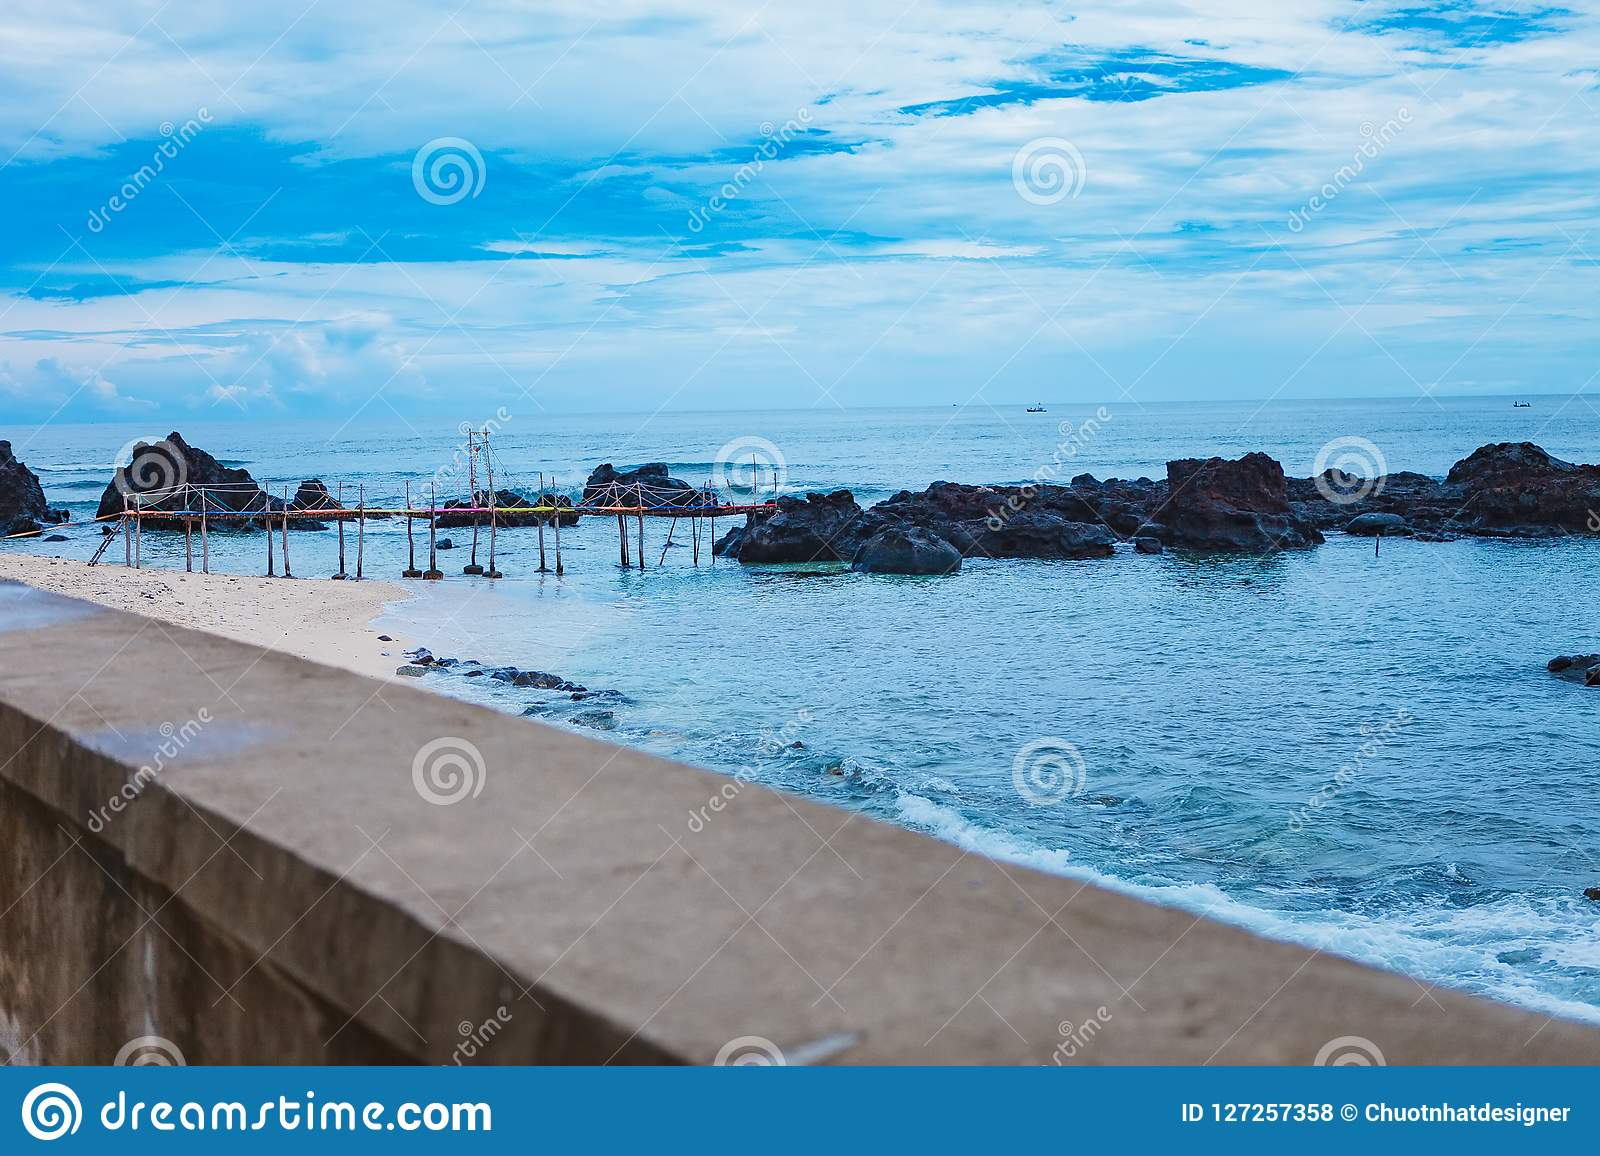 Beach On Small Island In Ly Son Quang Ngai Vietnam Stock Photo Image Of Garland Cityscape 127257358